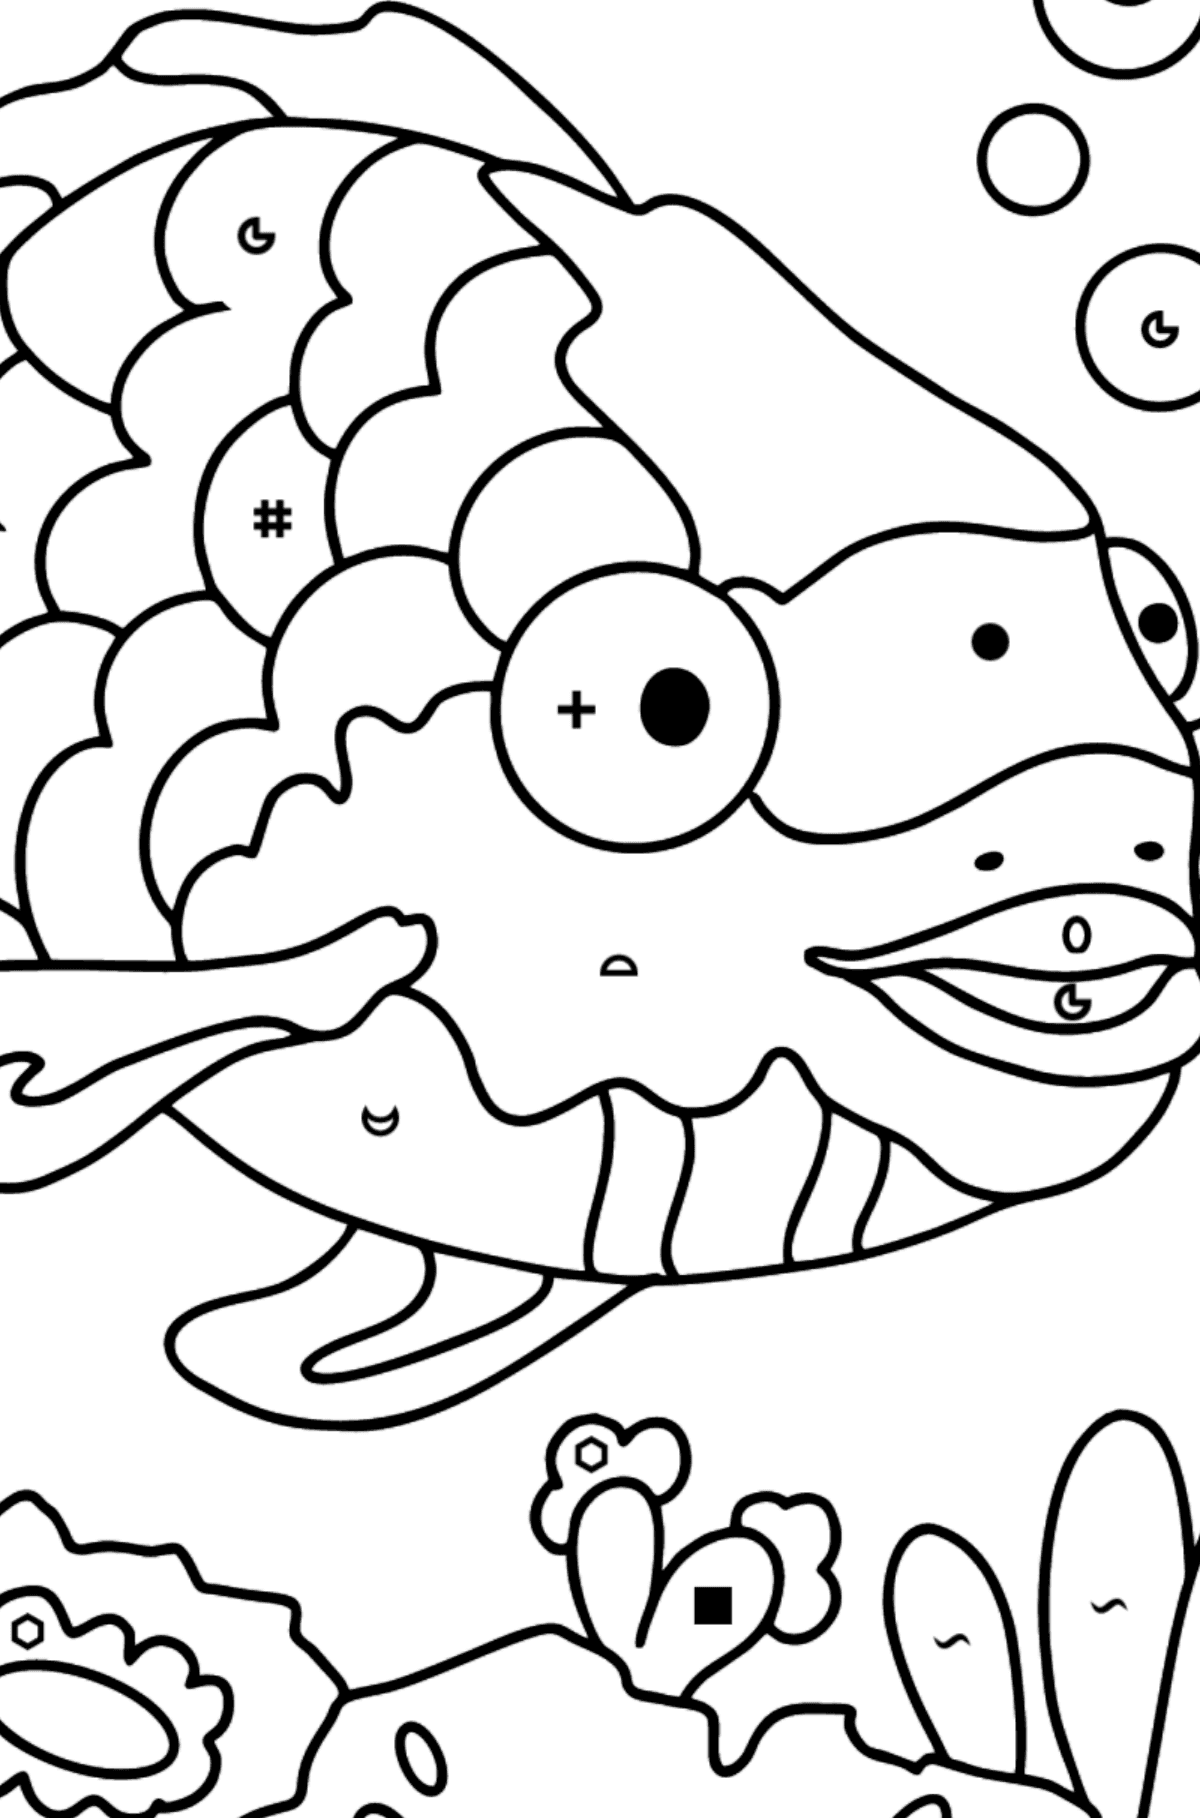 Coloring Page - A Fish with Beautiful Scales - Coloring by Symbols and Geometric Shapes for Kids